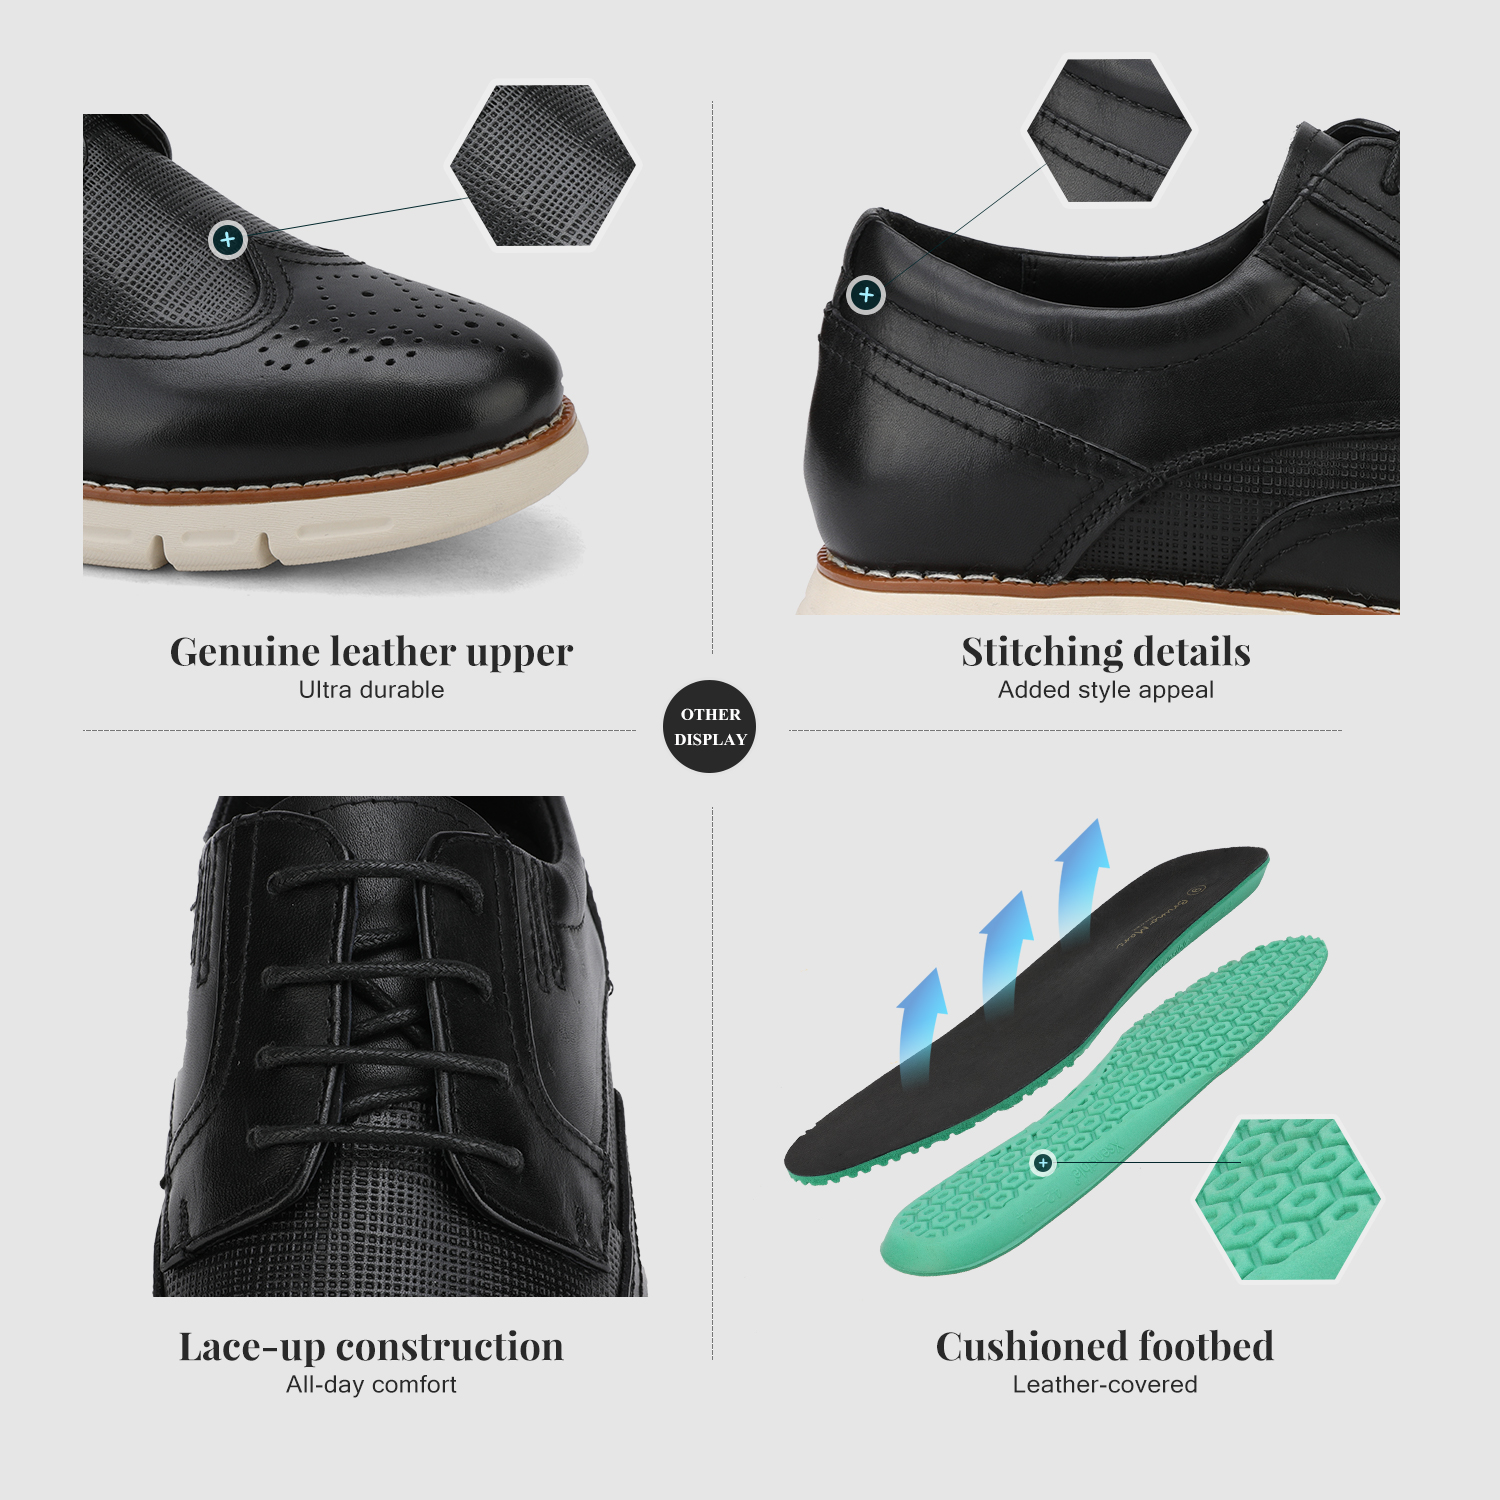 Men-s-Genuine-Leather-Casual-Formal-Sneakers-Lace-up-Business-Oxford-Dress-Shoes thumbnail 13